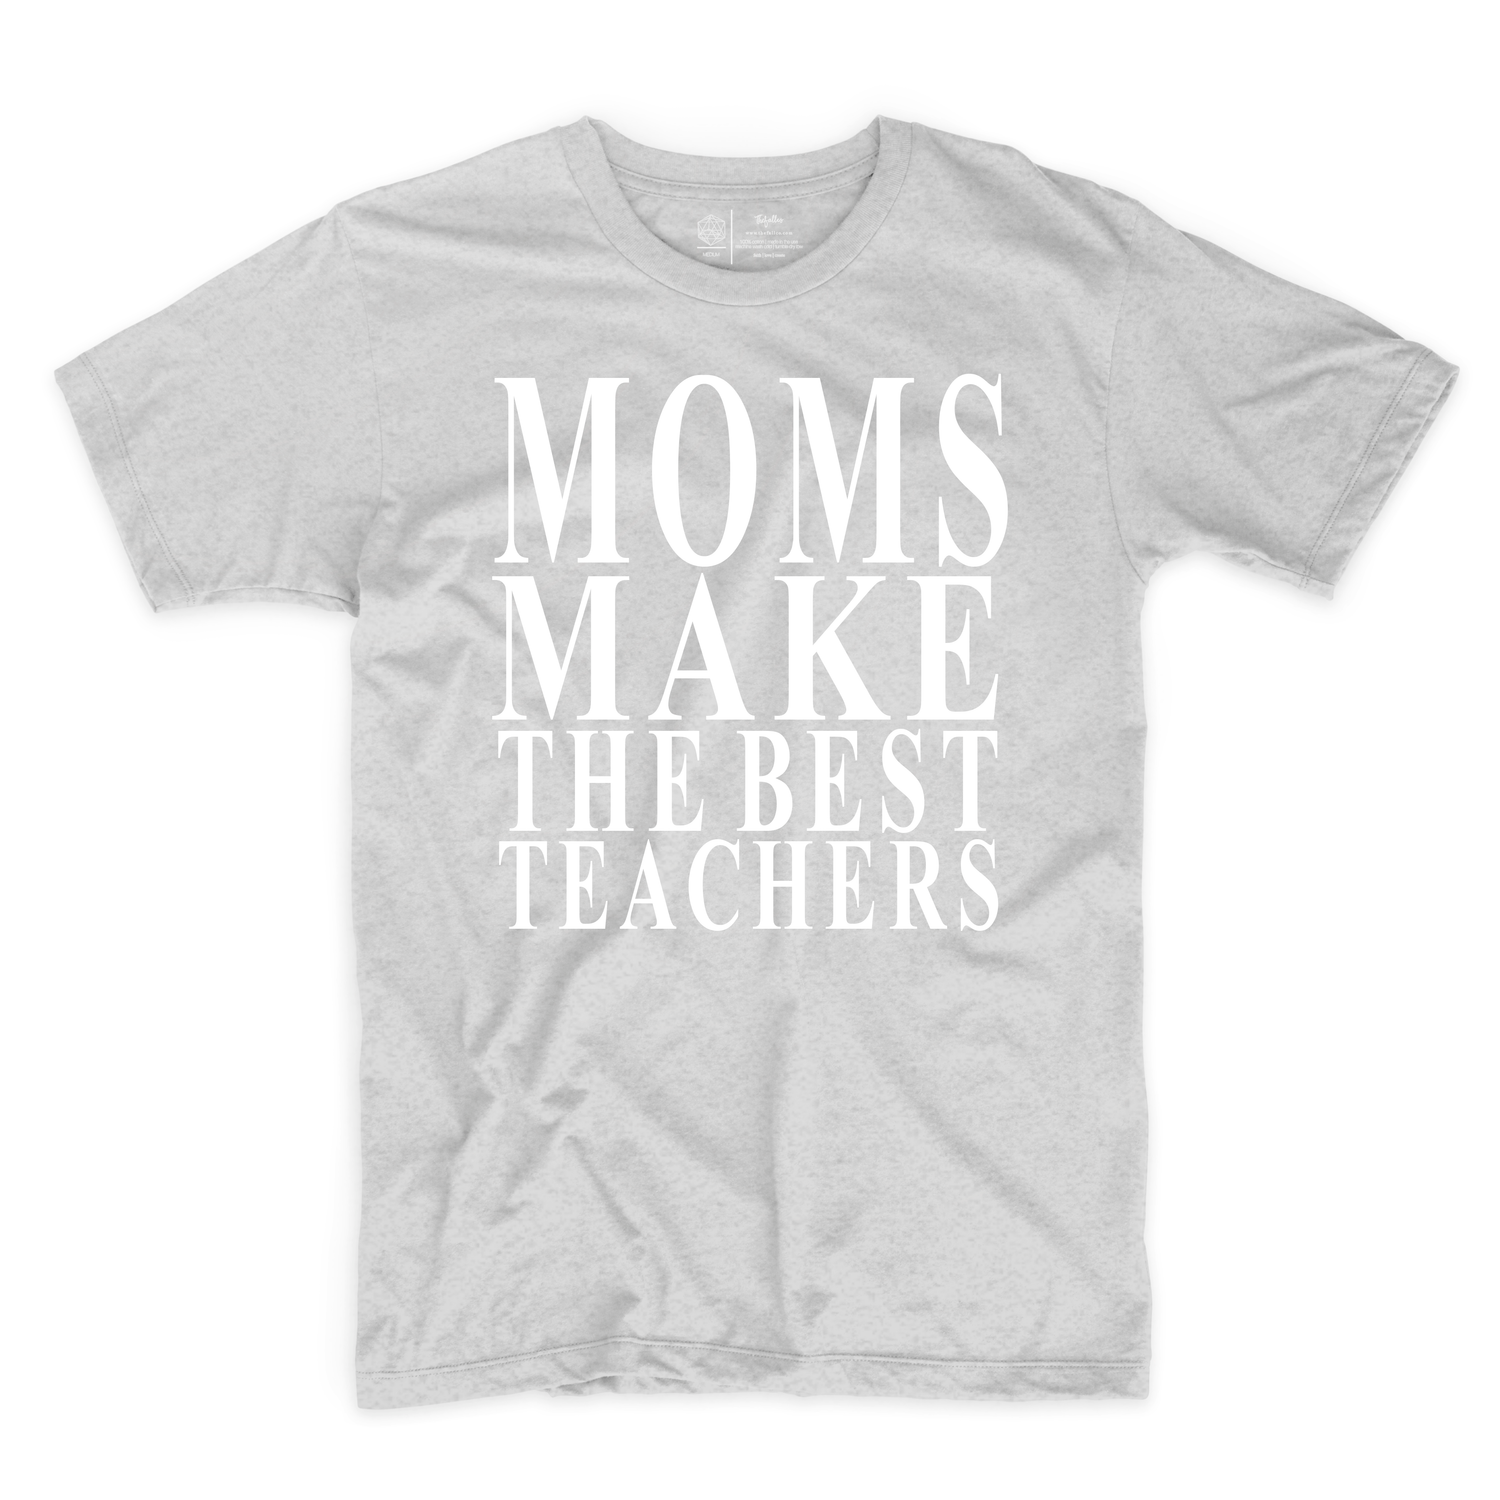 Moms Make The Best Teachers Tee {Adults}